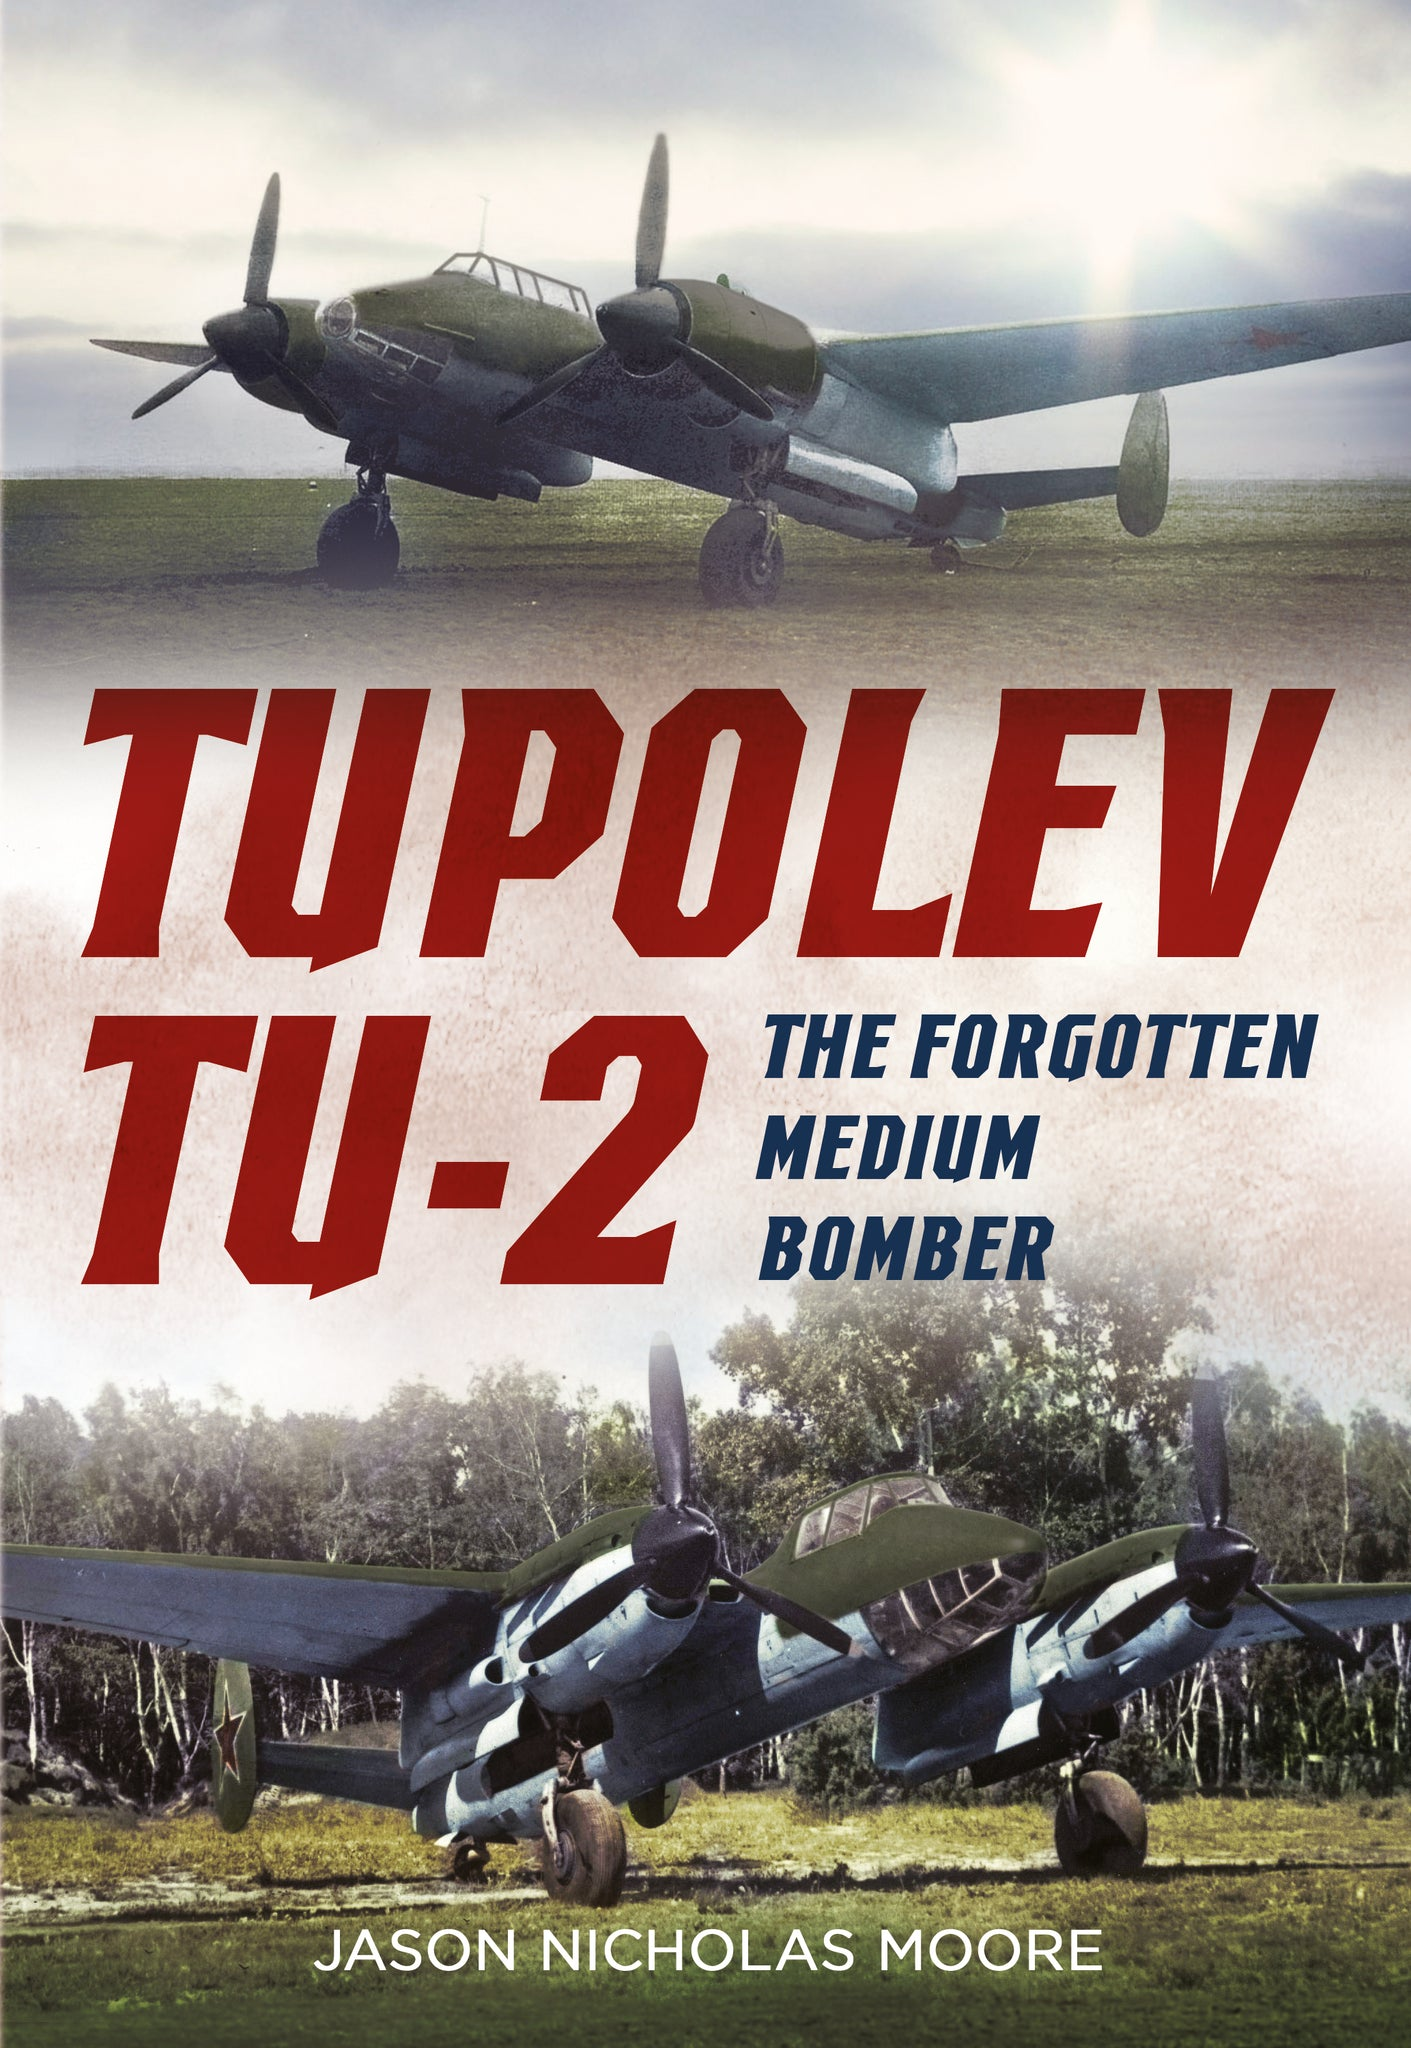 Tupolev Tu-2: The Forgotten Medium Bomber - available from Fonthill Media